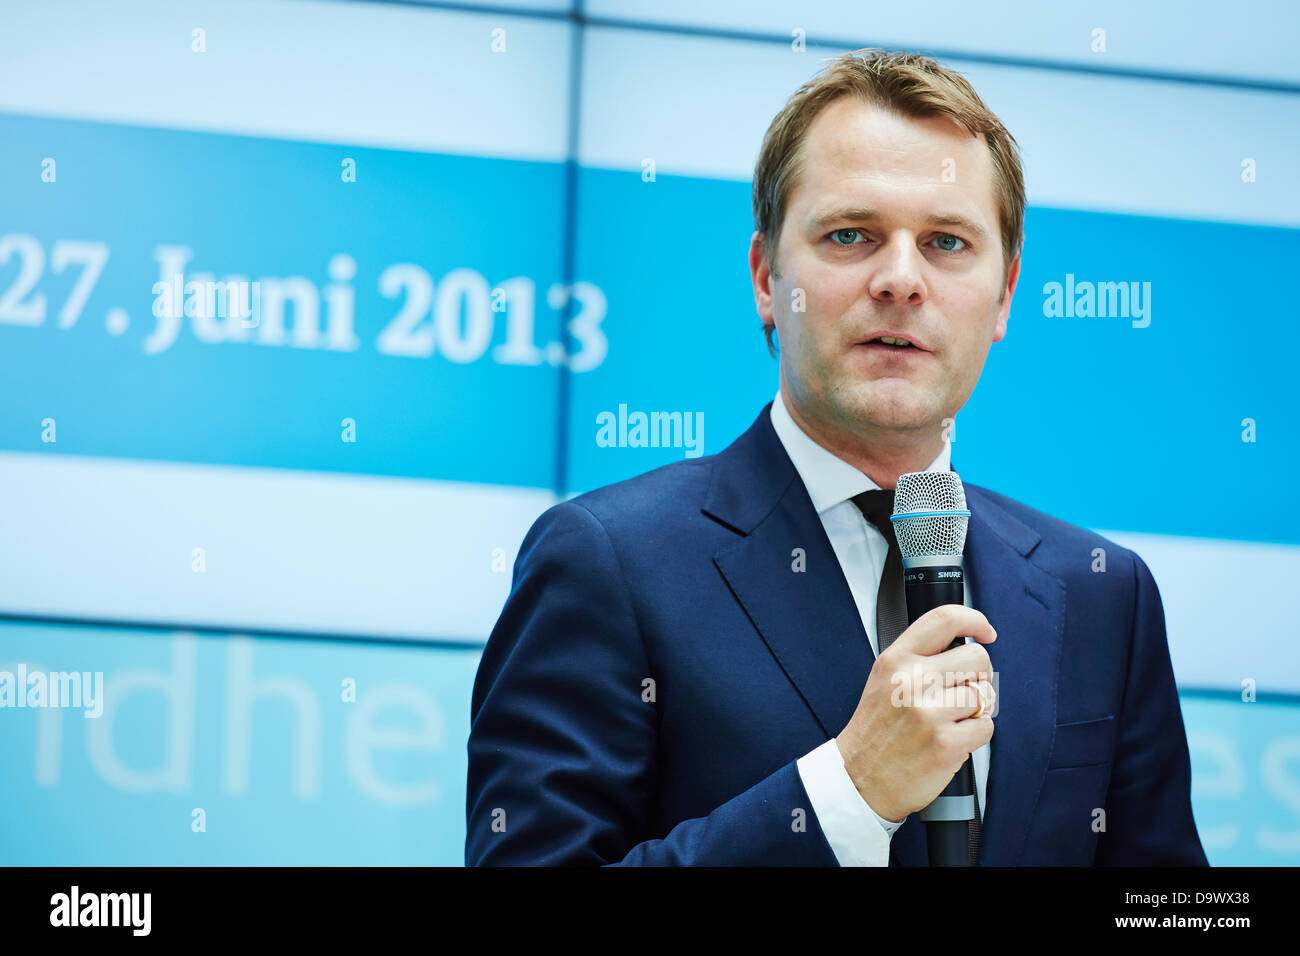 Berlin, germany. 27th June, 2013. Daniel Bahr (FDP), German Federal Minister of Health, gives a press conference - Stock Image